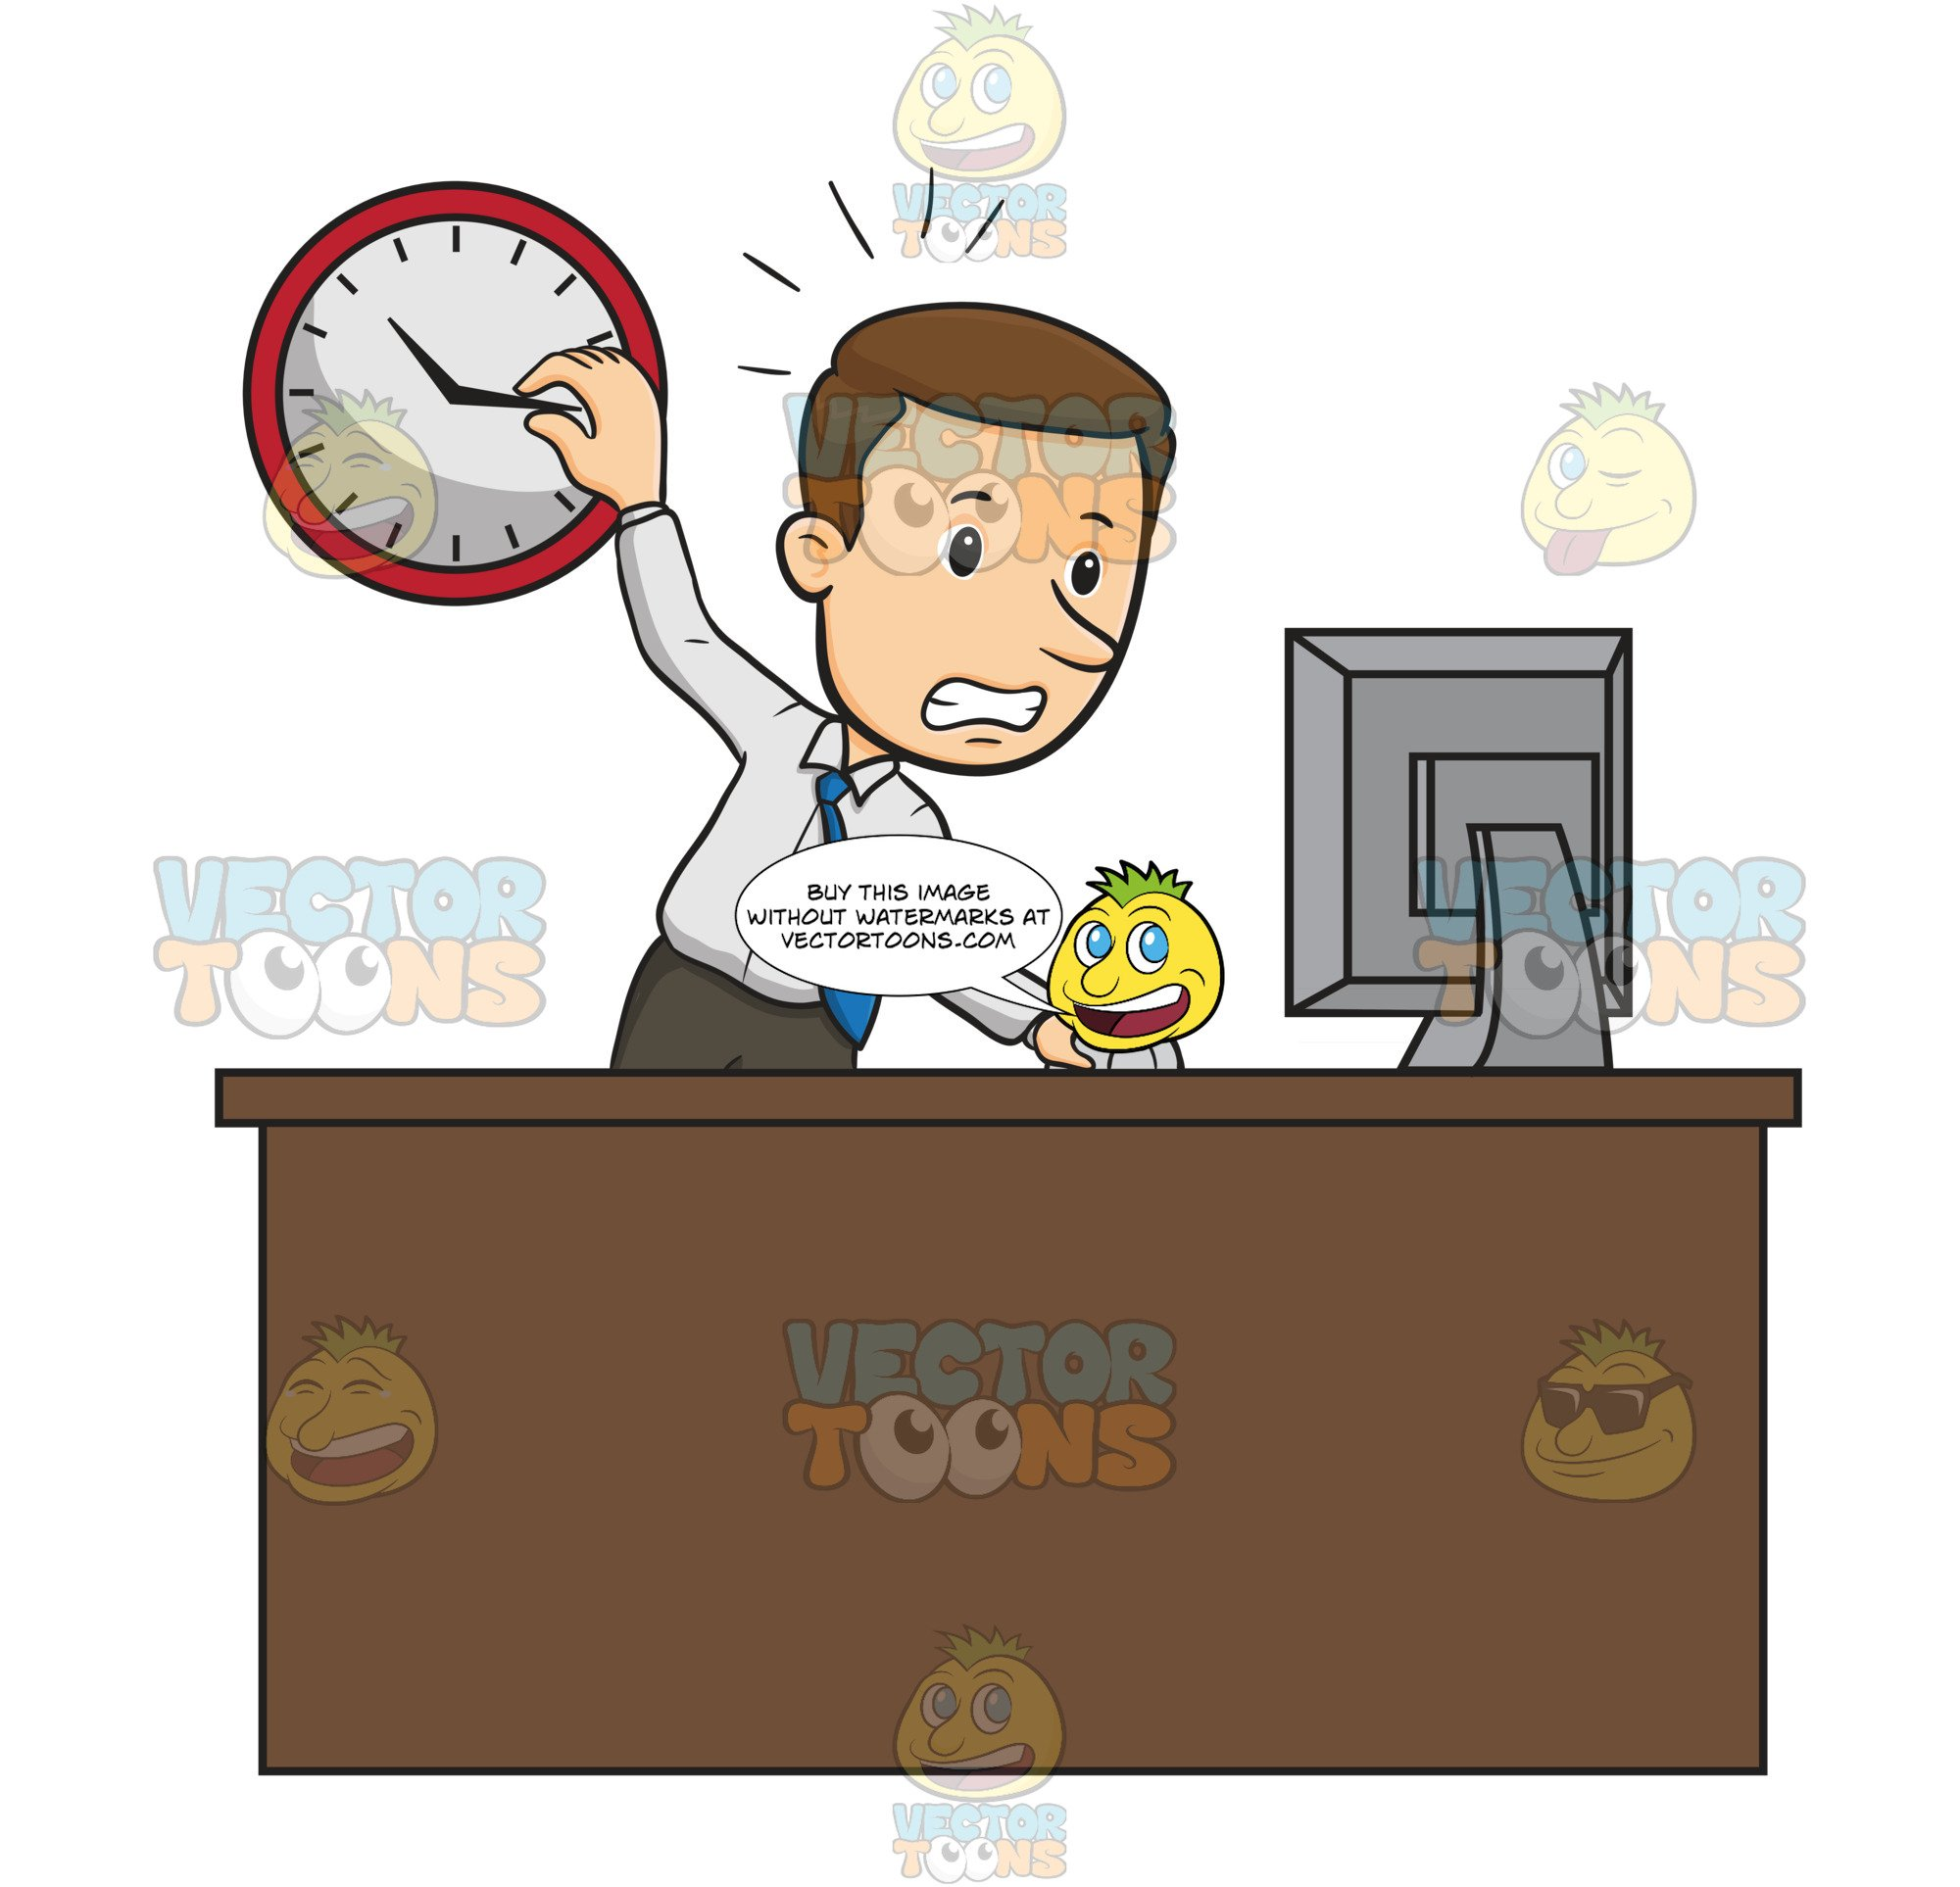 Picture of a people stressed at a desk clipart vector freeuse stock Business Man Stands At Work Desk Staring At Computer Screen With One Hand  On Wall Clock And His Other Hand Operating Computer Mouse, Looks Stressed vector freeuse stock